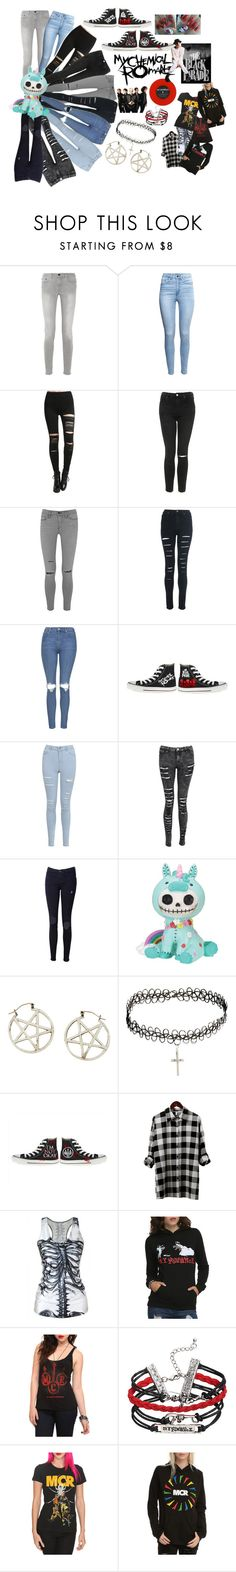 """""""My Chemical Romance outfit"""" by xadrenaline-revolutionx ❤ liked on Polyvore featuring Proenza Schouler, H&M, Topshop, Frame Denim, Miss Selfridge, Pamela Love, ASOS, Converse and Venom"""